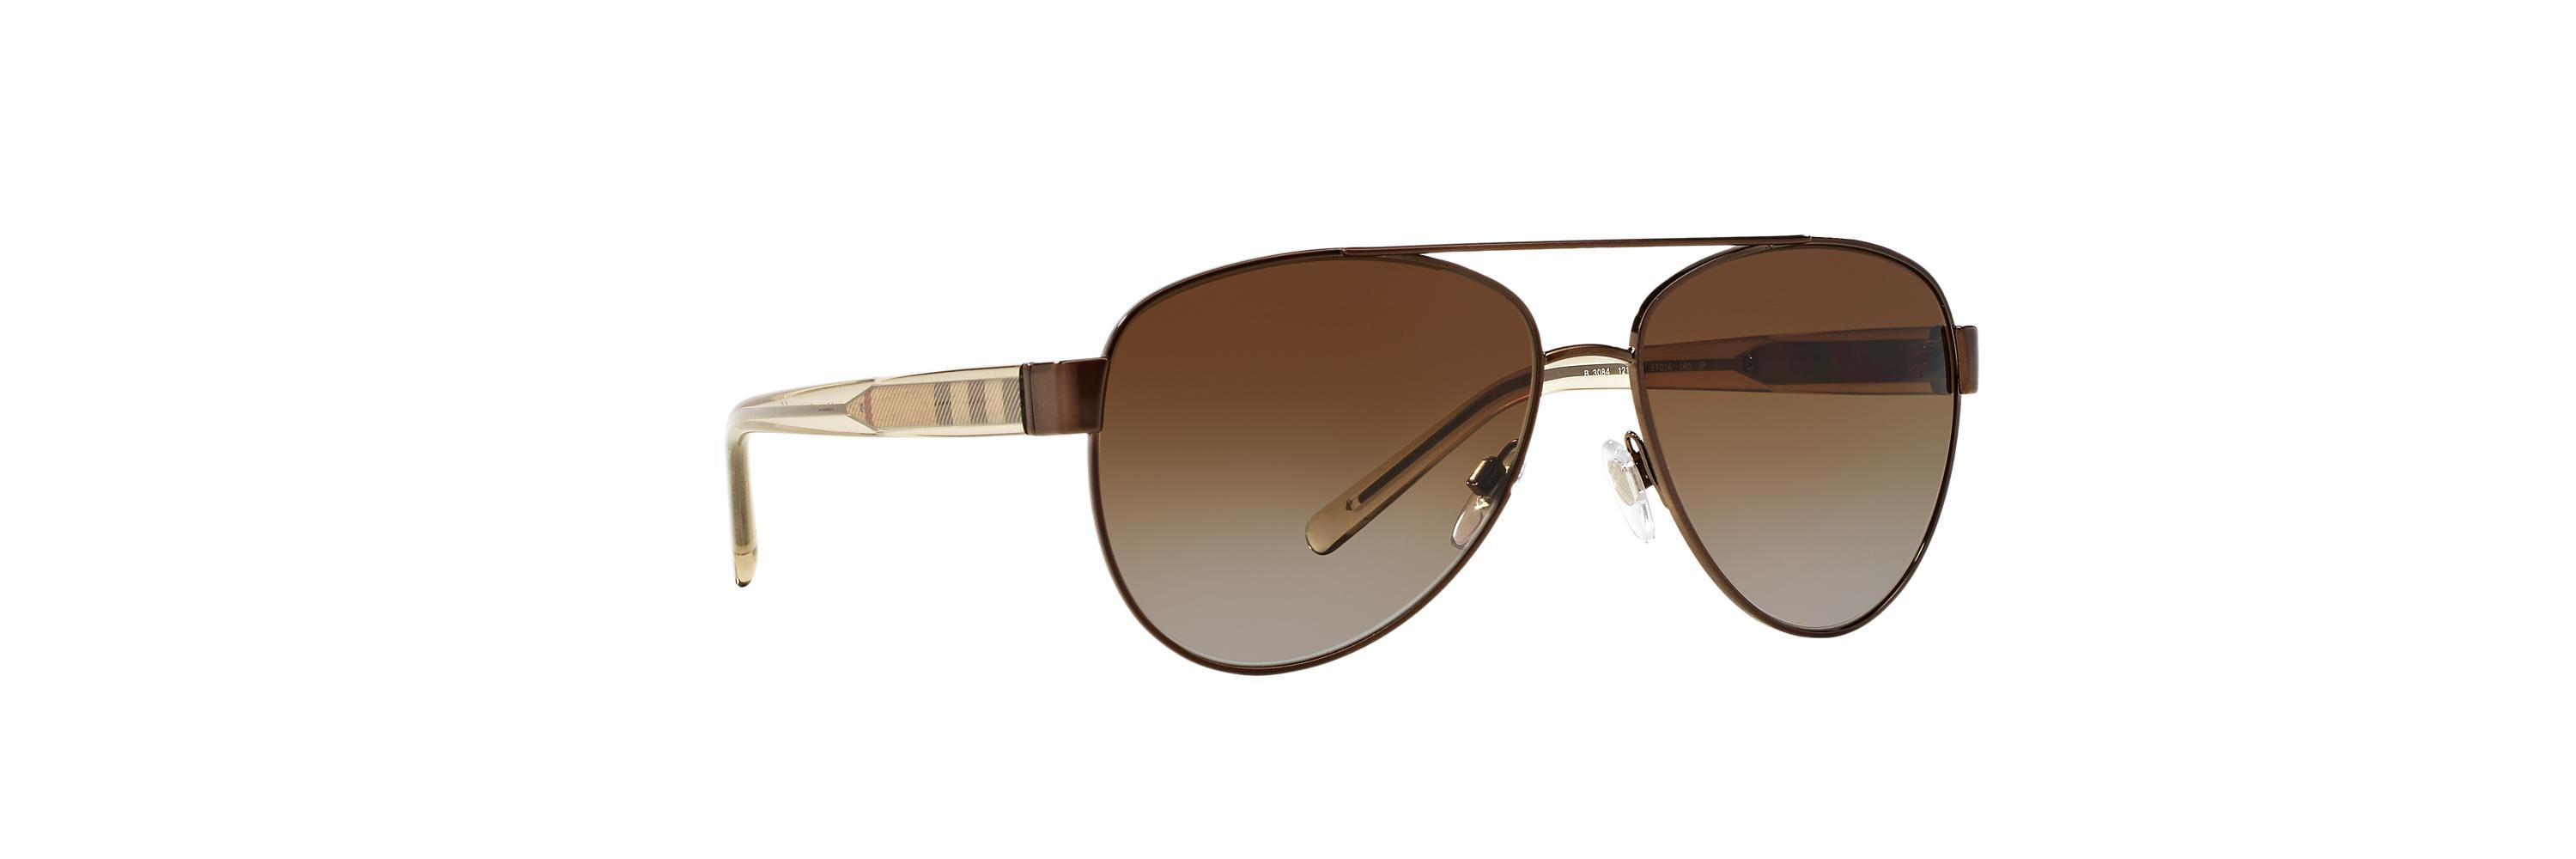 97dc867e983 Lyst - Burberry Be3084 in Brown for Men